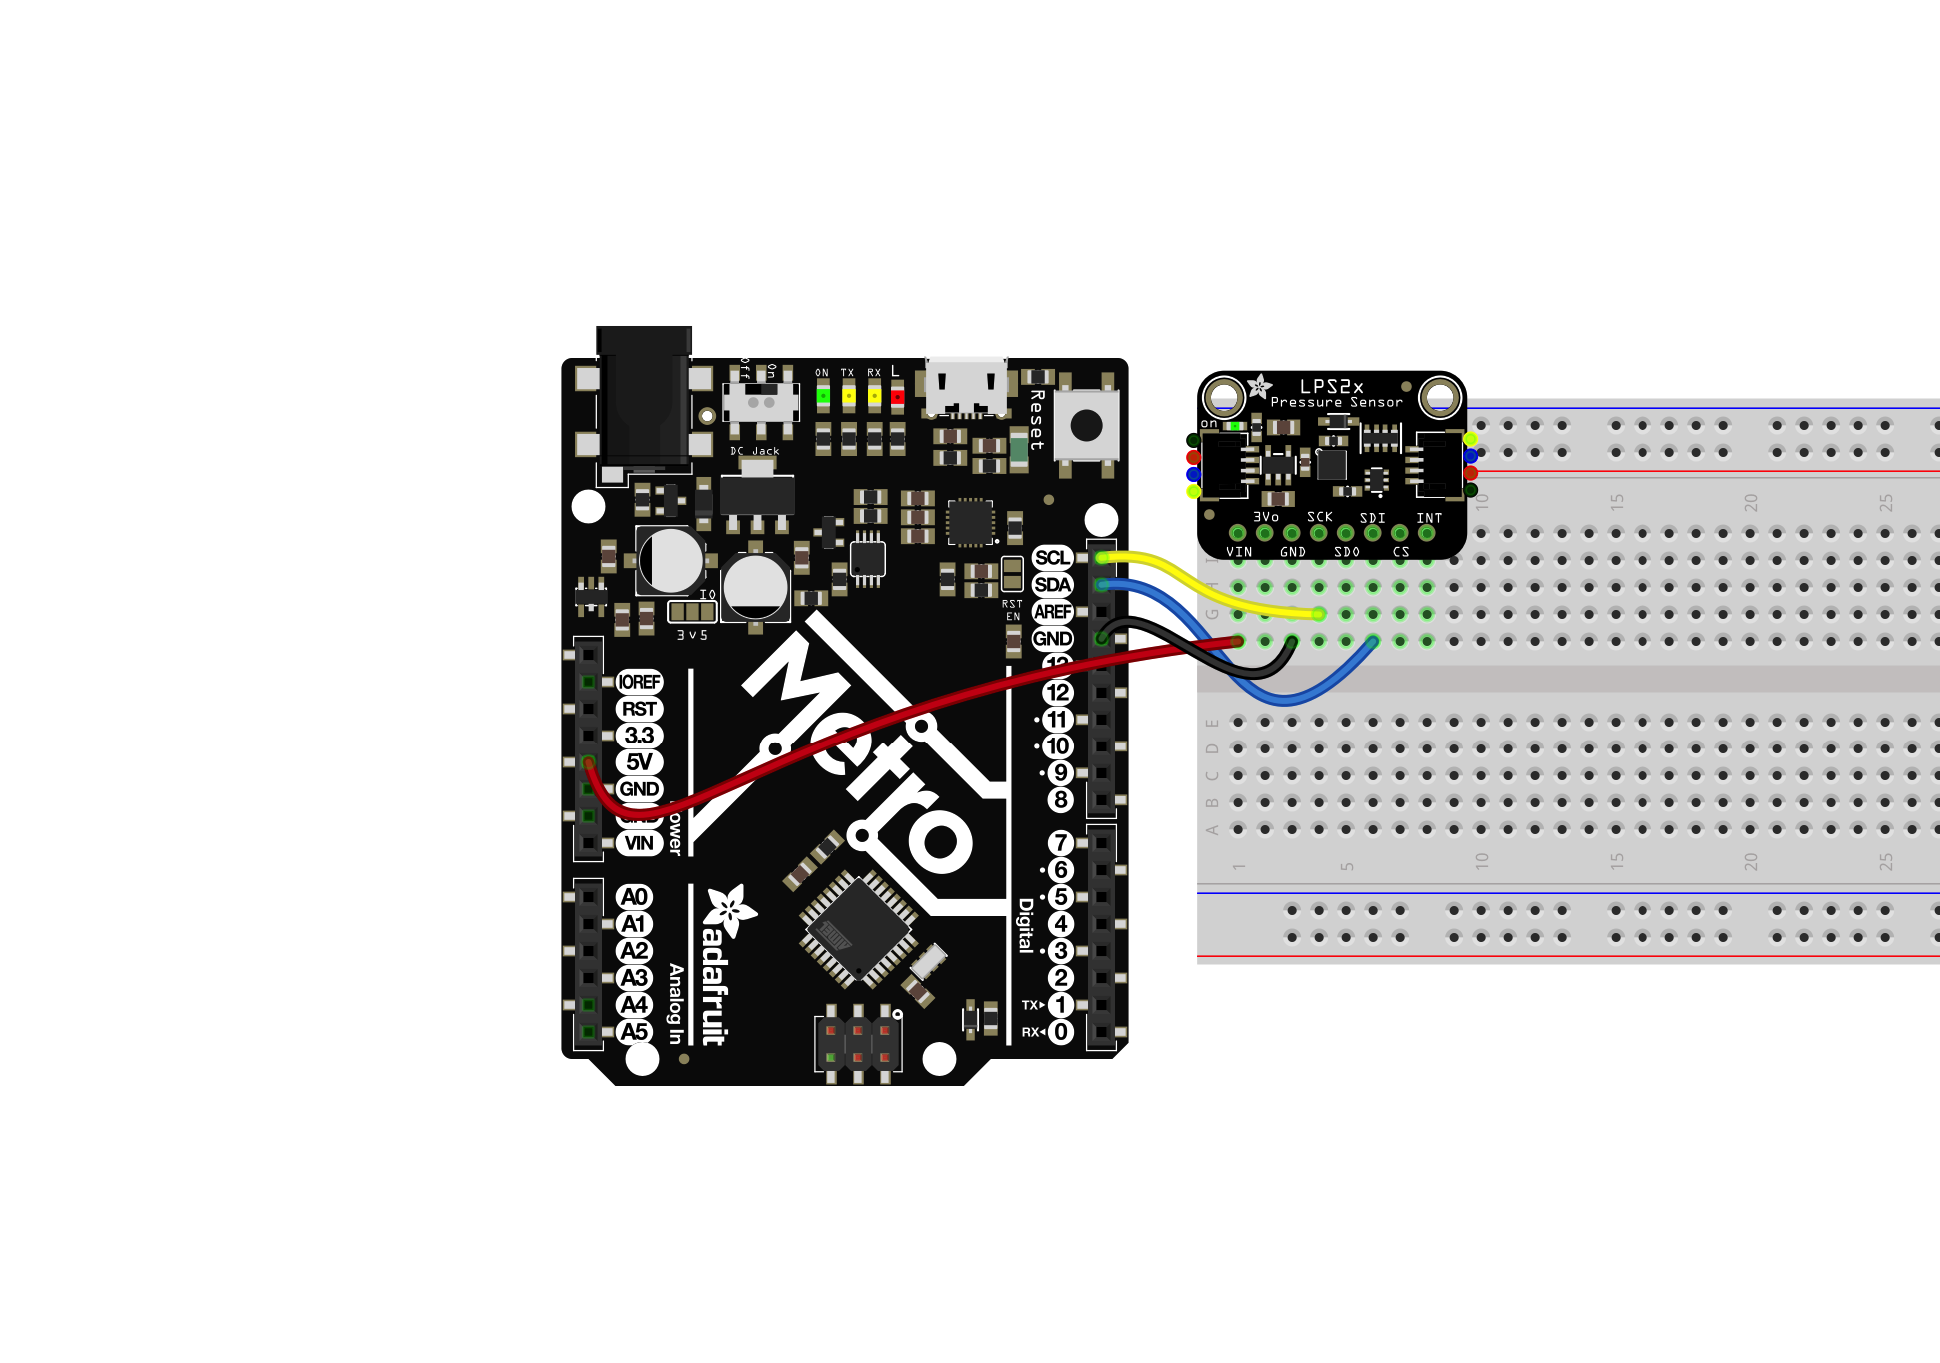 adafruit_products_c_arduino_wiring_bb.png